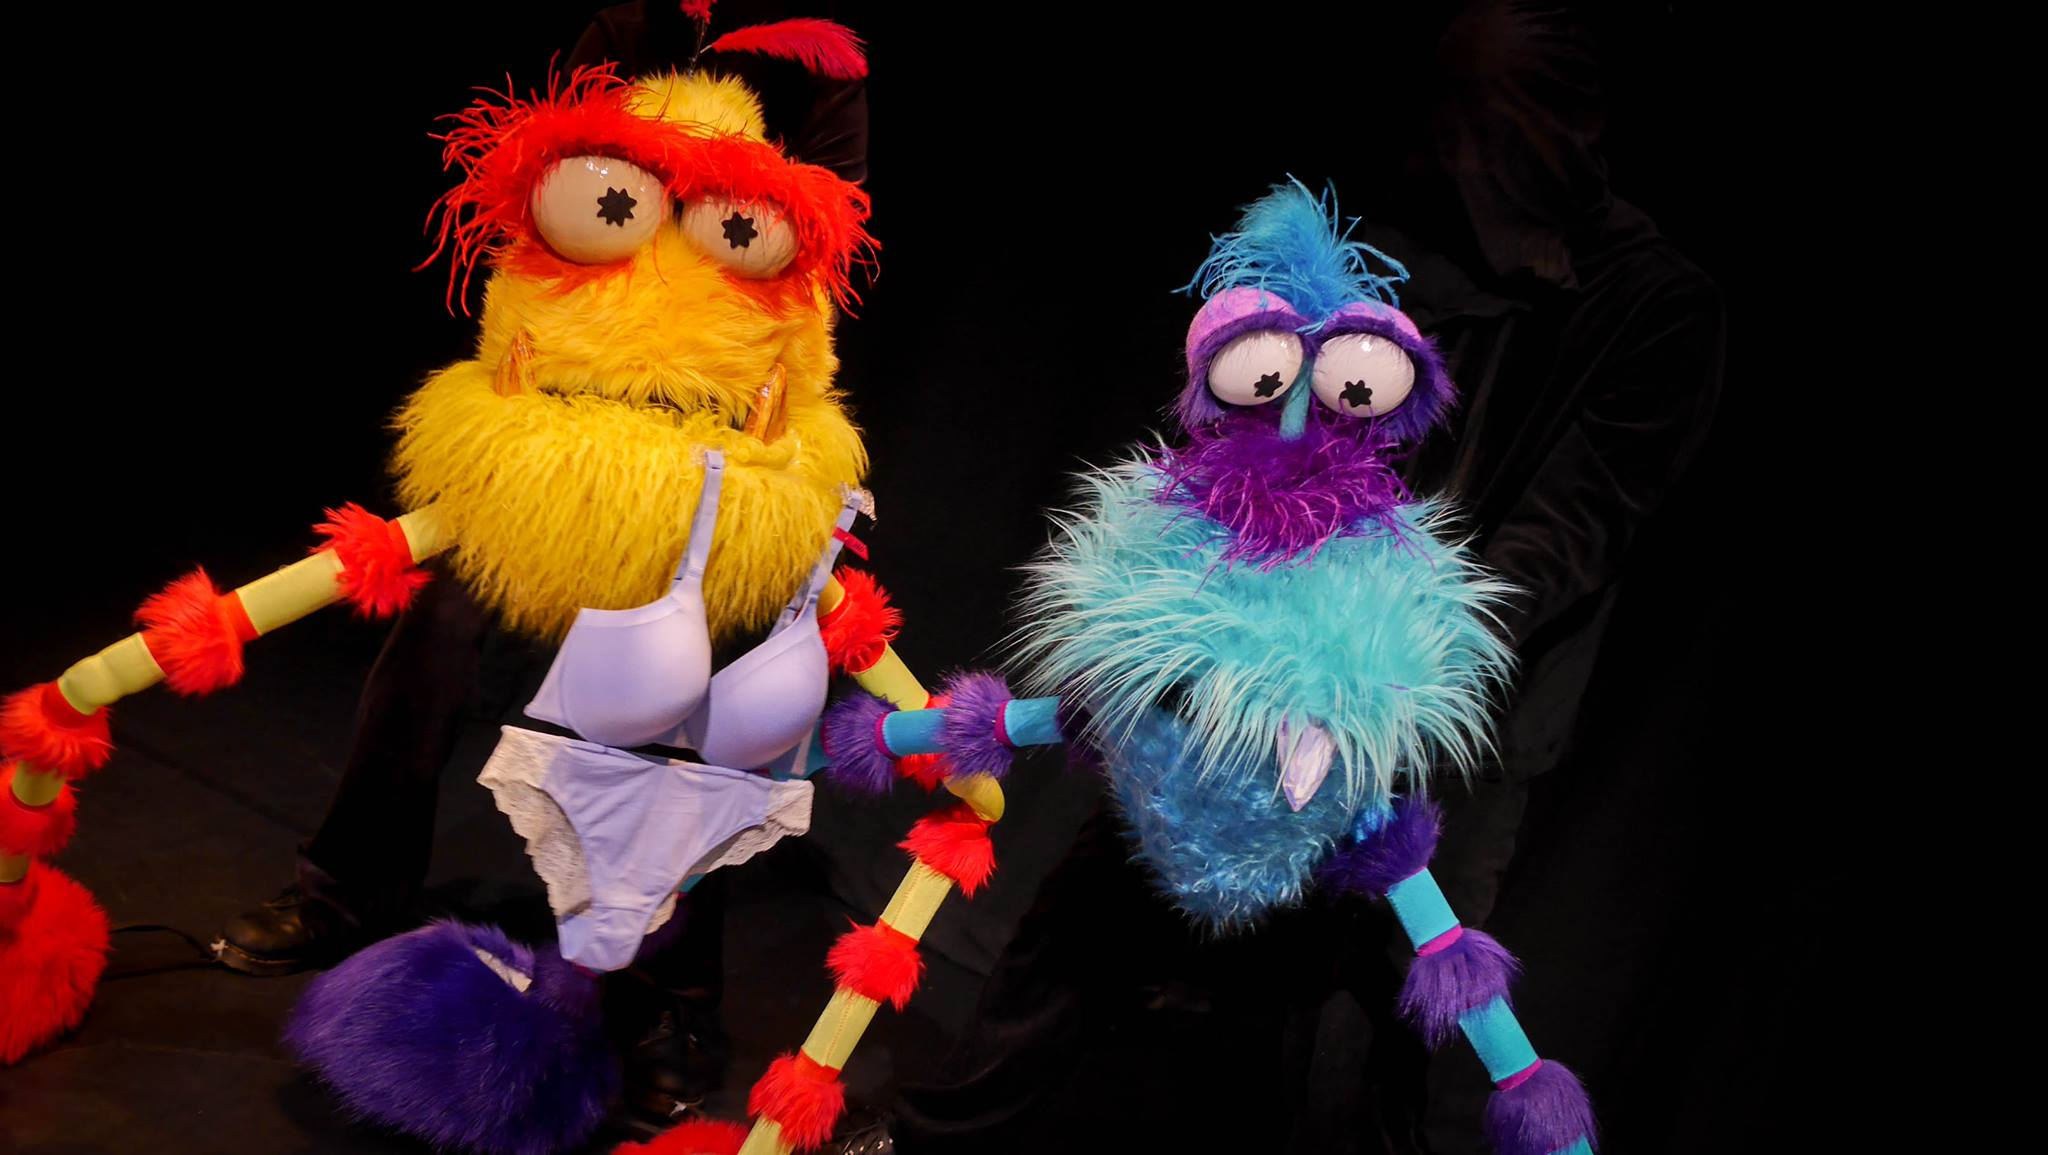 Photo by Shawn Patrick Higgins. Puppet Show by Bill Holznagel and Paul Velasquez